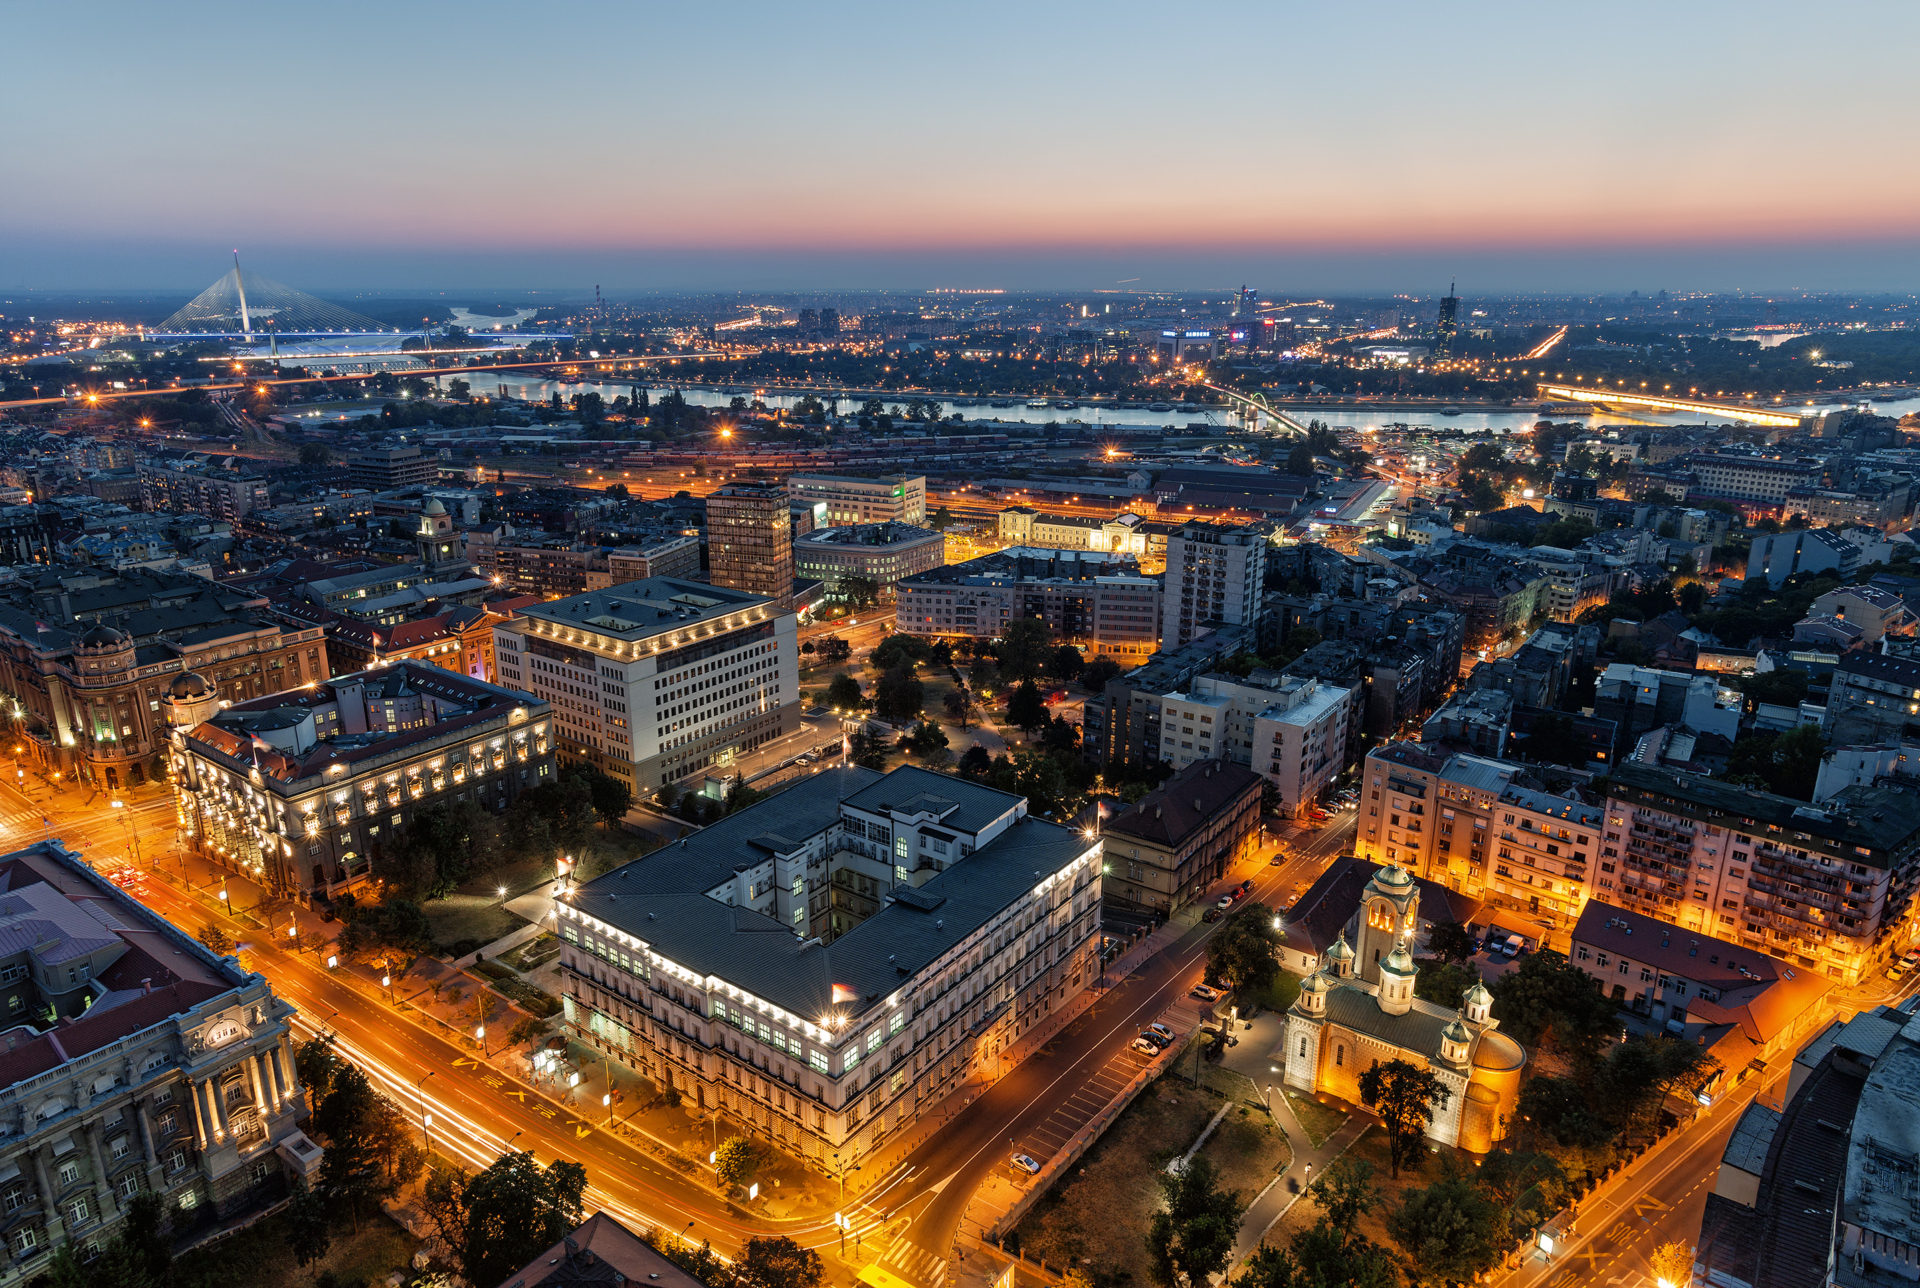 Belgrade at night view